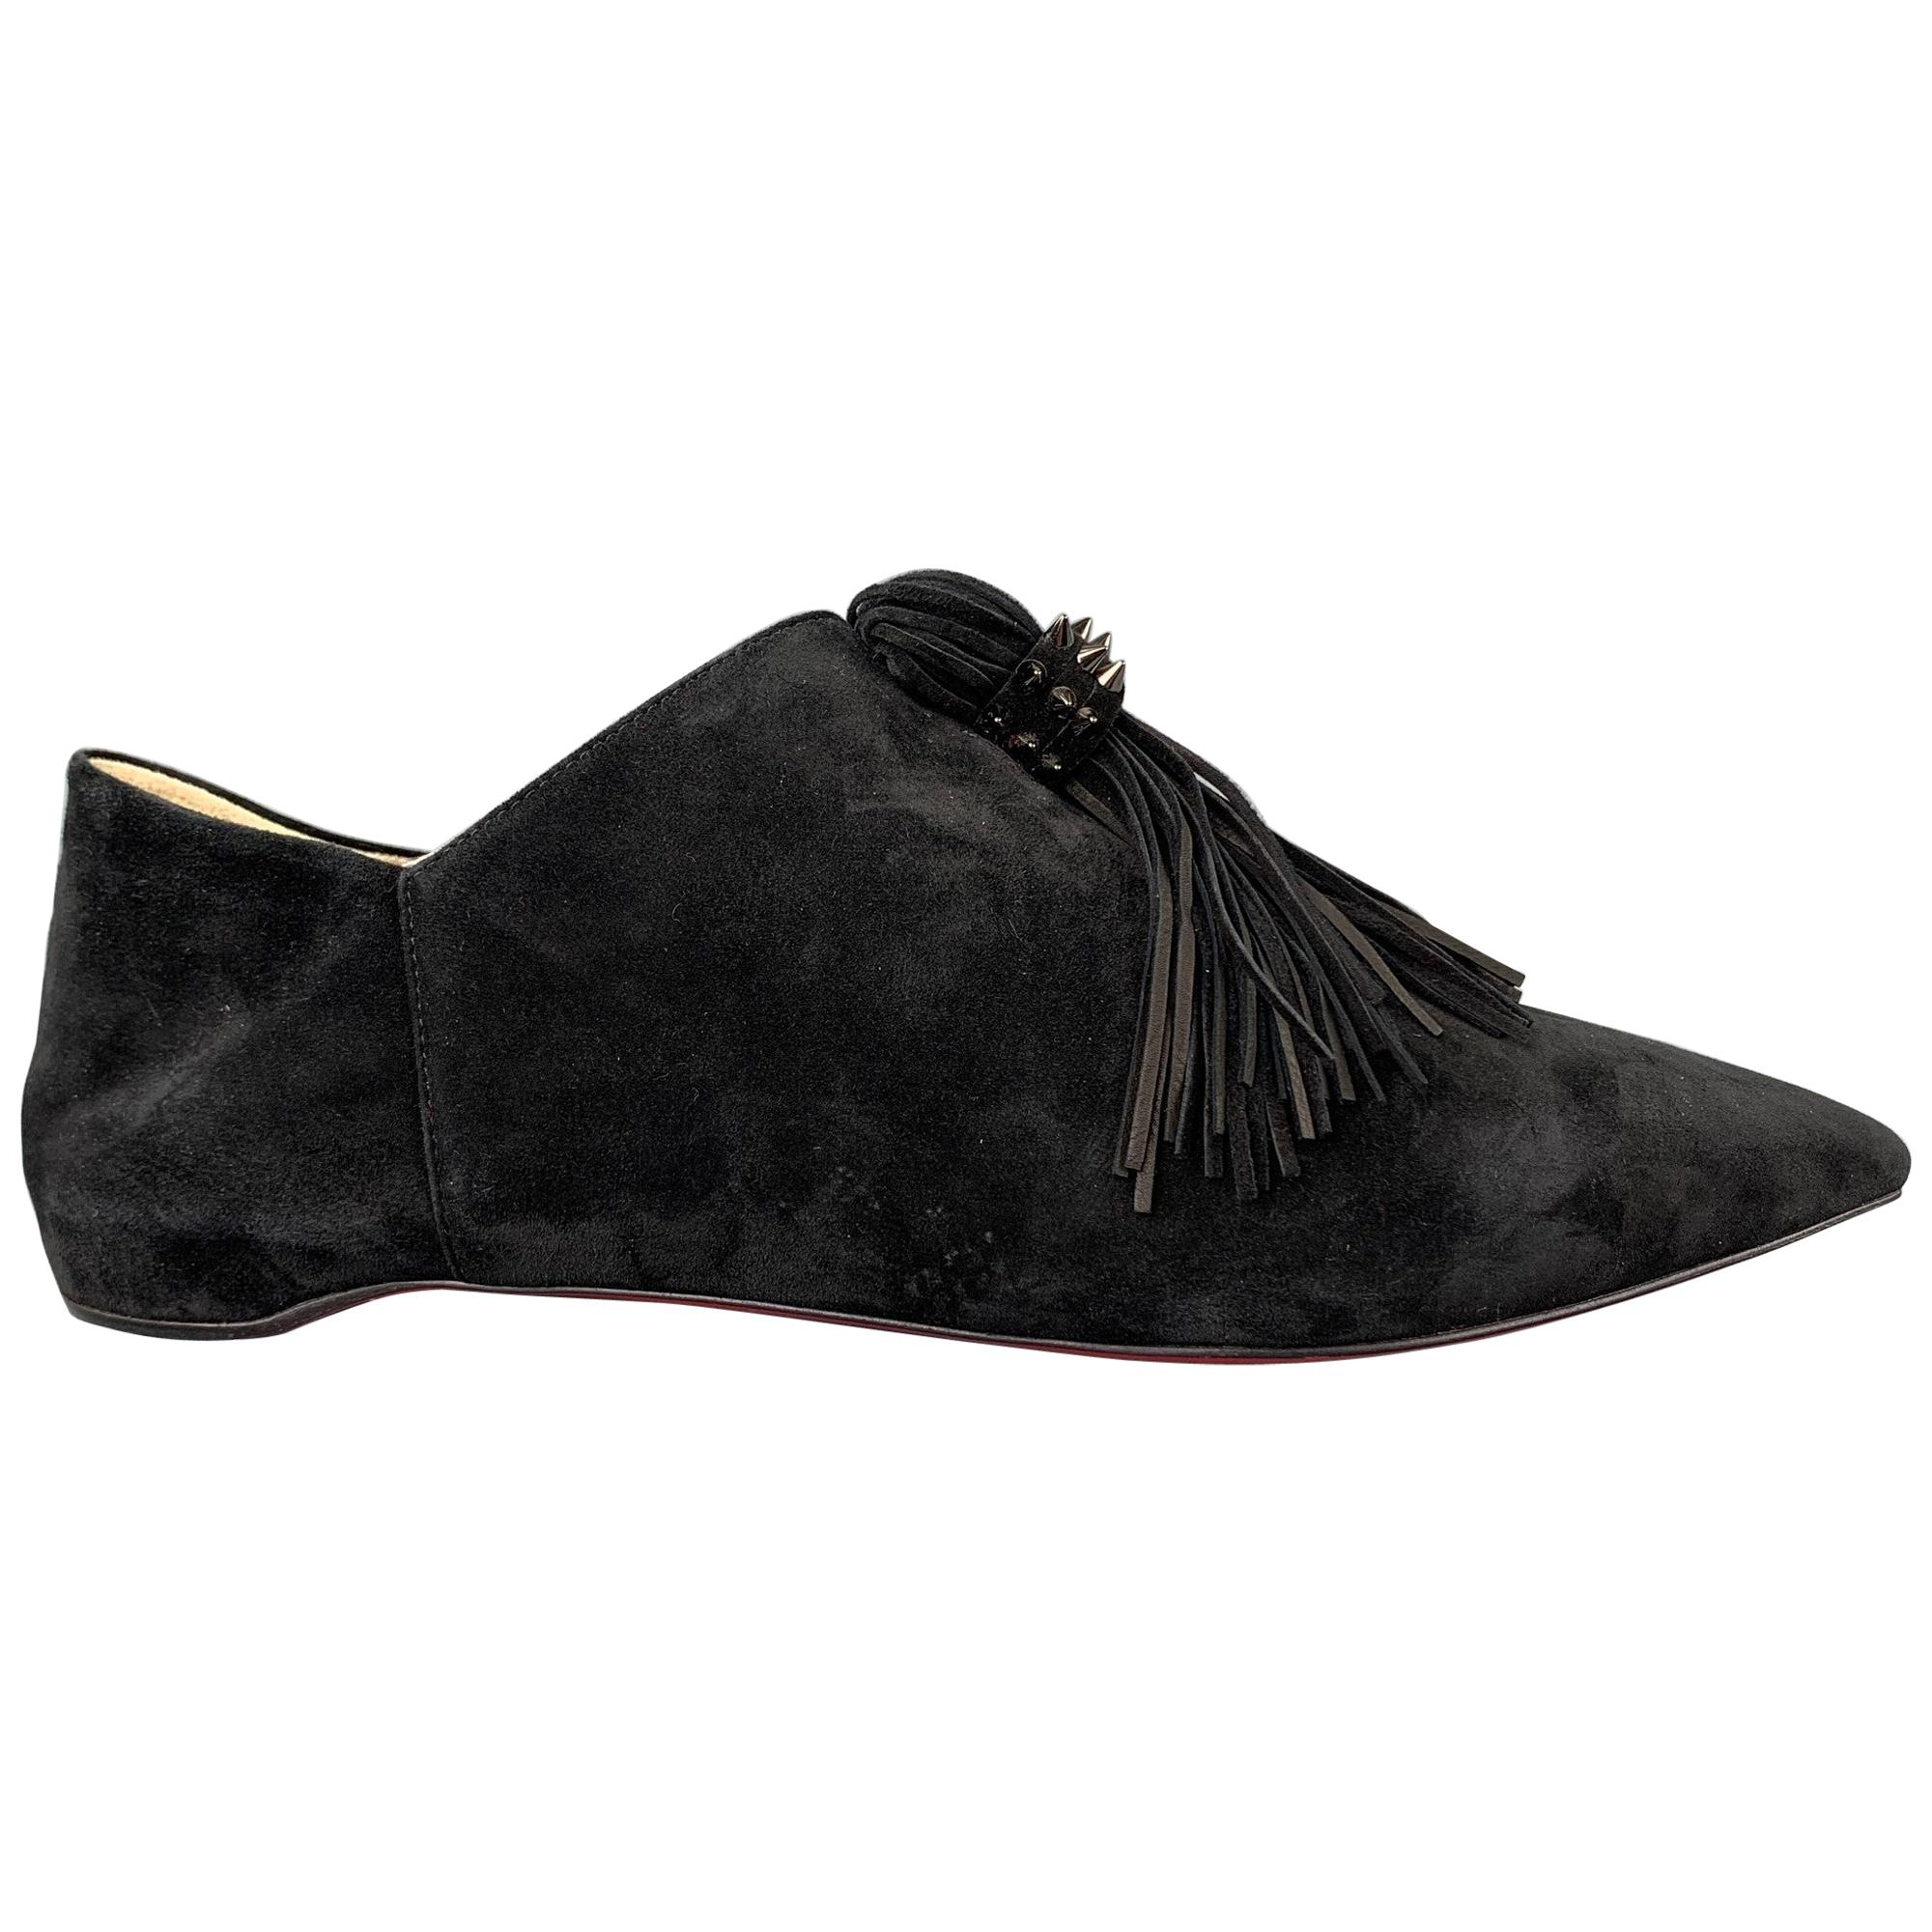 CHRISTIAN LOUBOUTIN Medinana Collapsible Size 8 Black Suede Tassel Flats